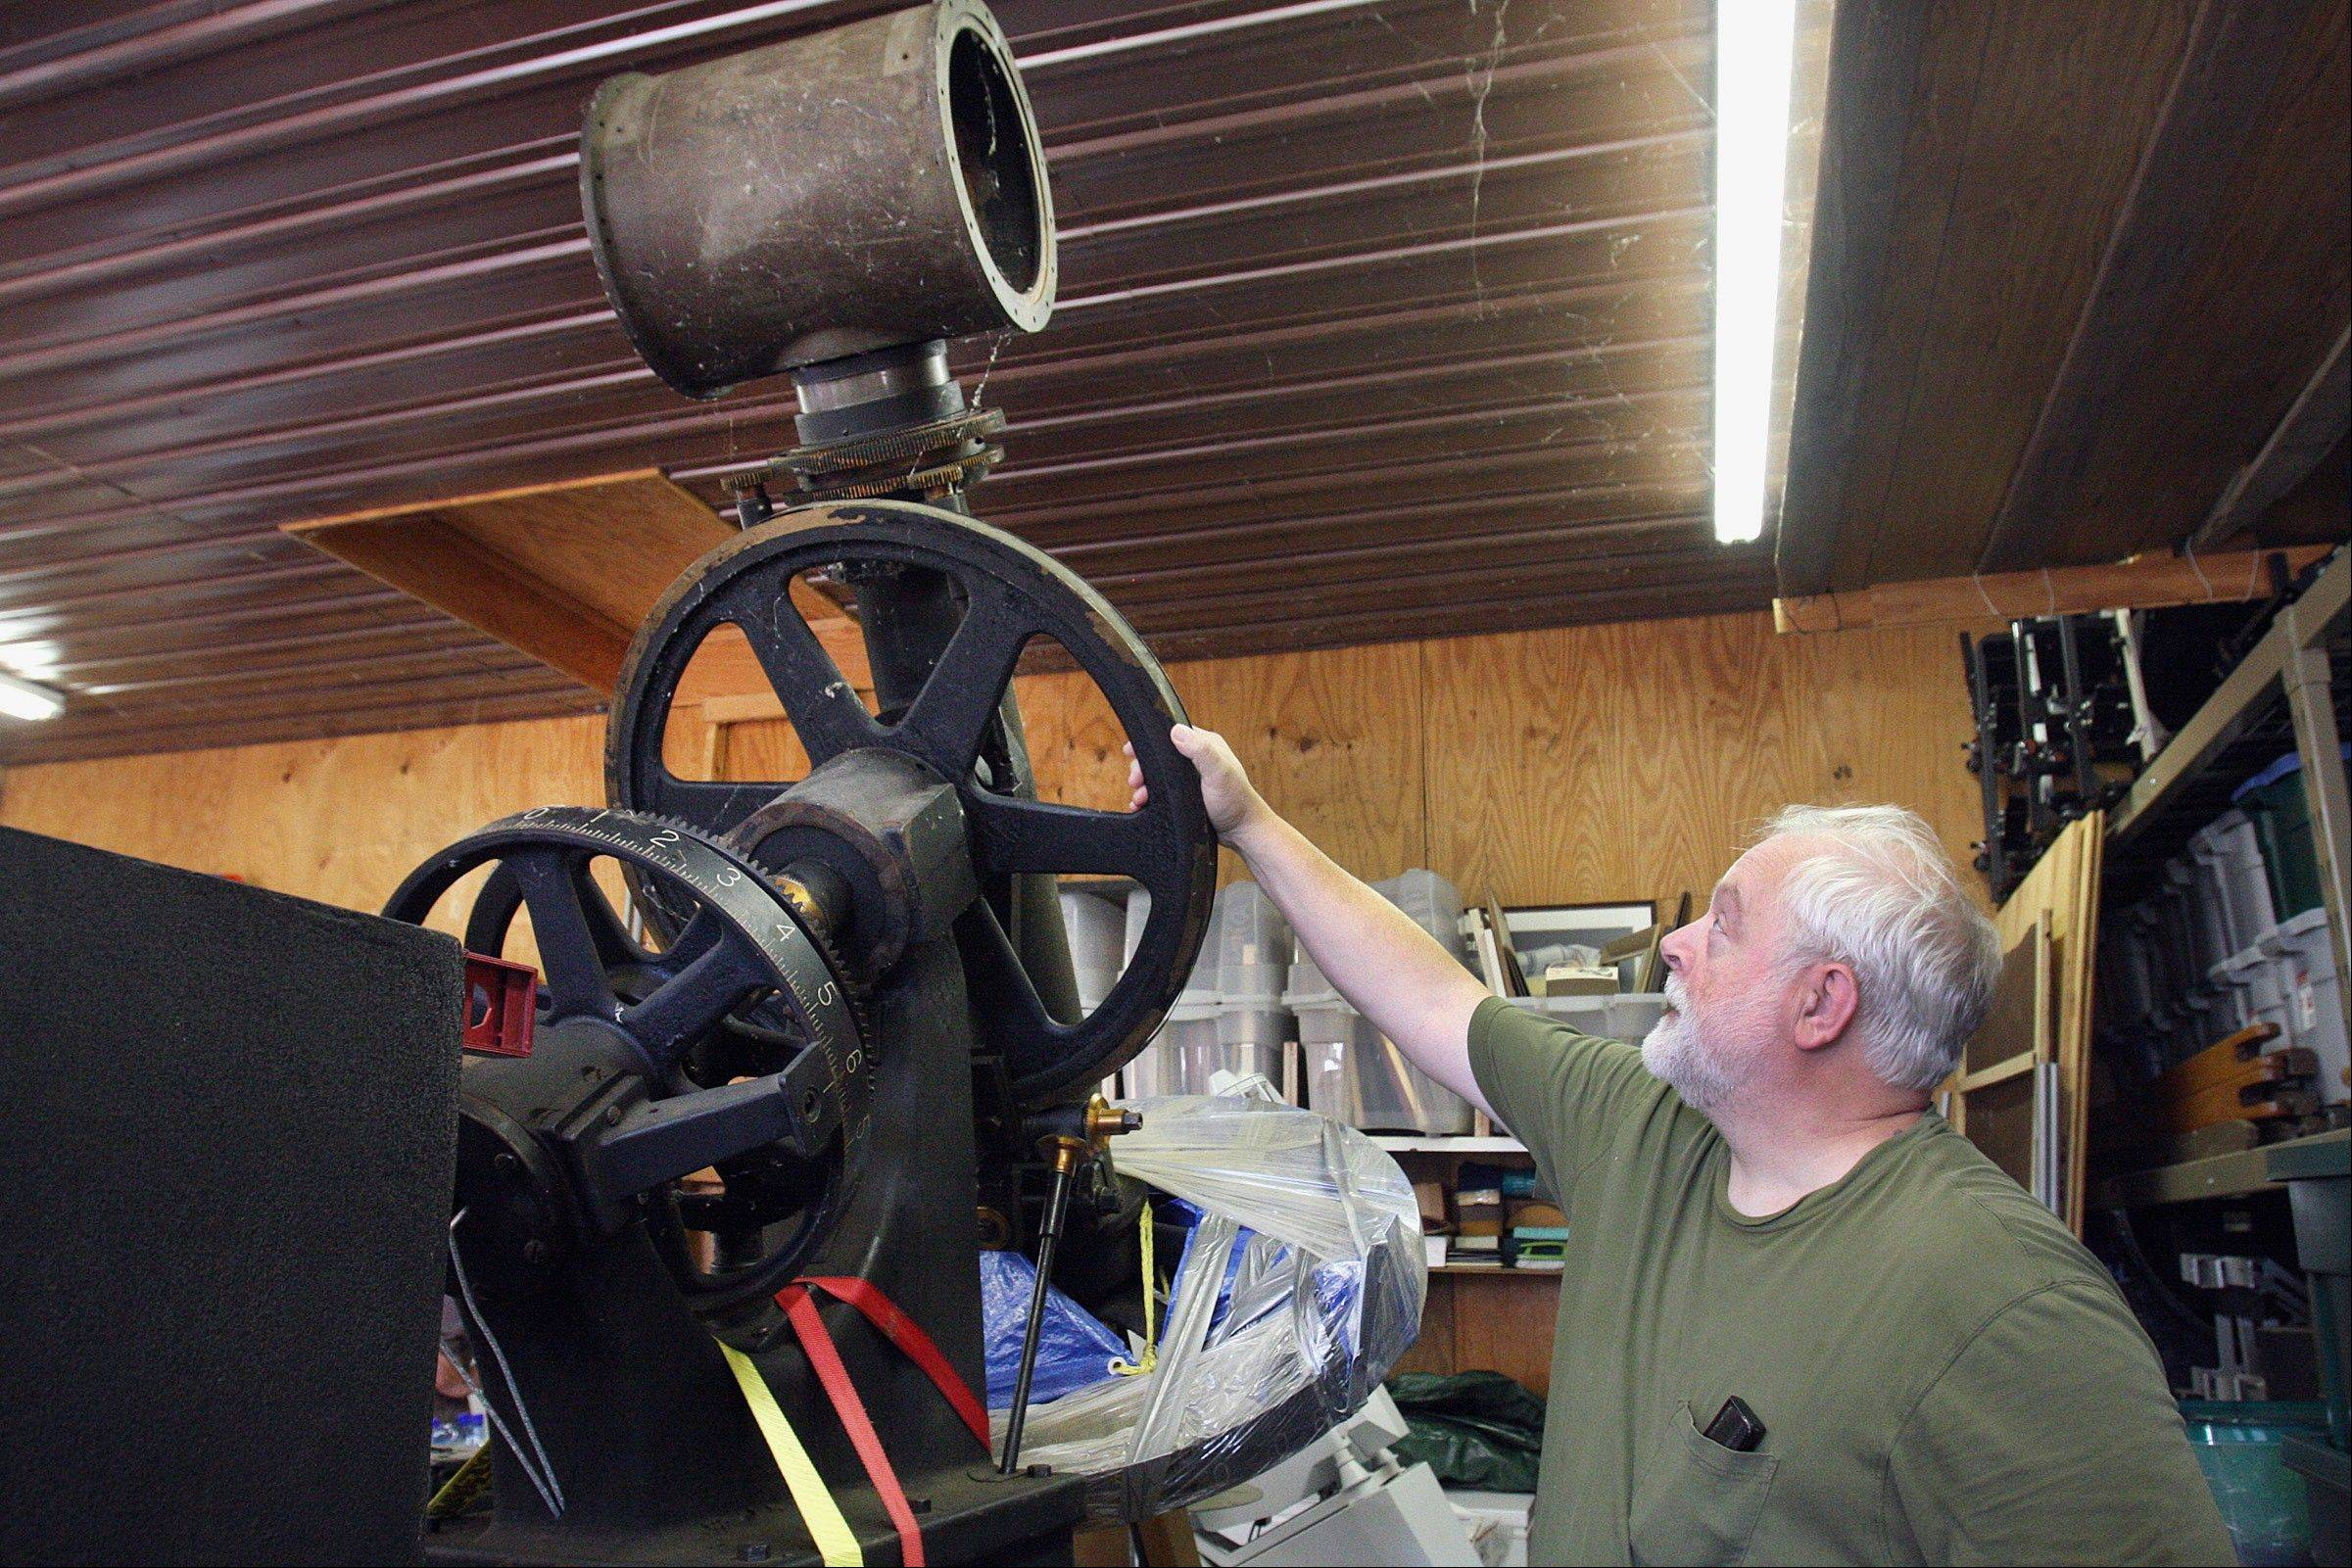 Telescope collector John Allseits inspects part of the wheel of his 1950 German equatorial refractor telescope housed in a building at his farm.